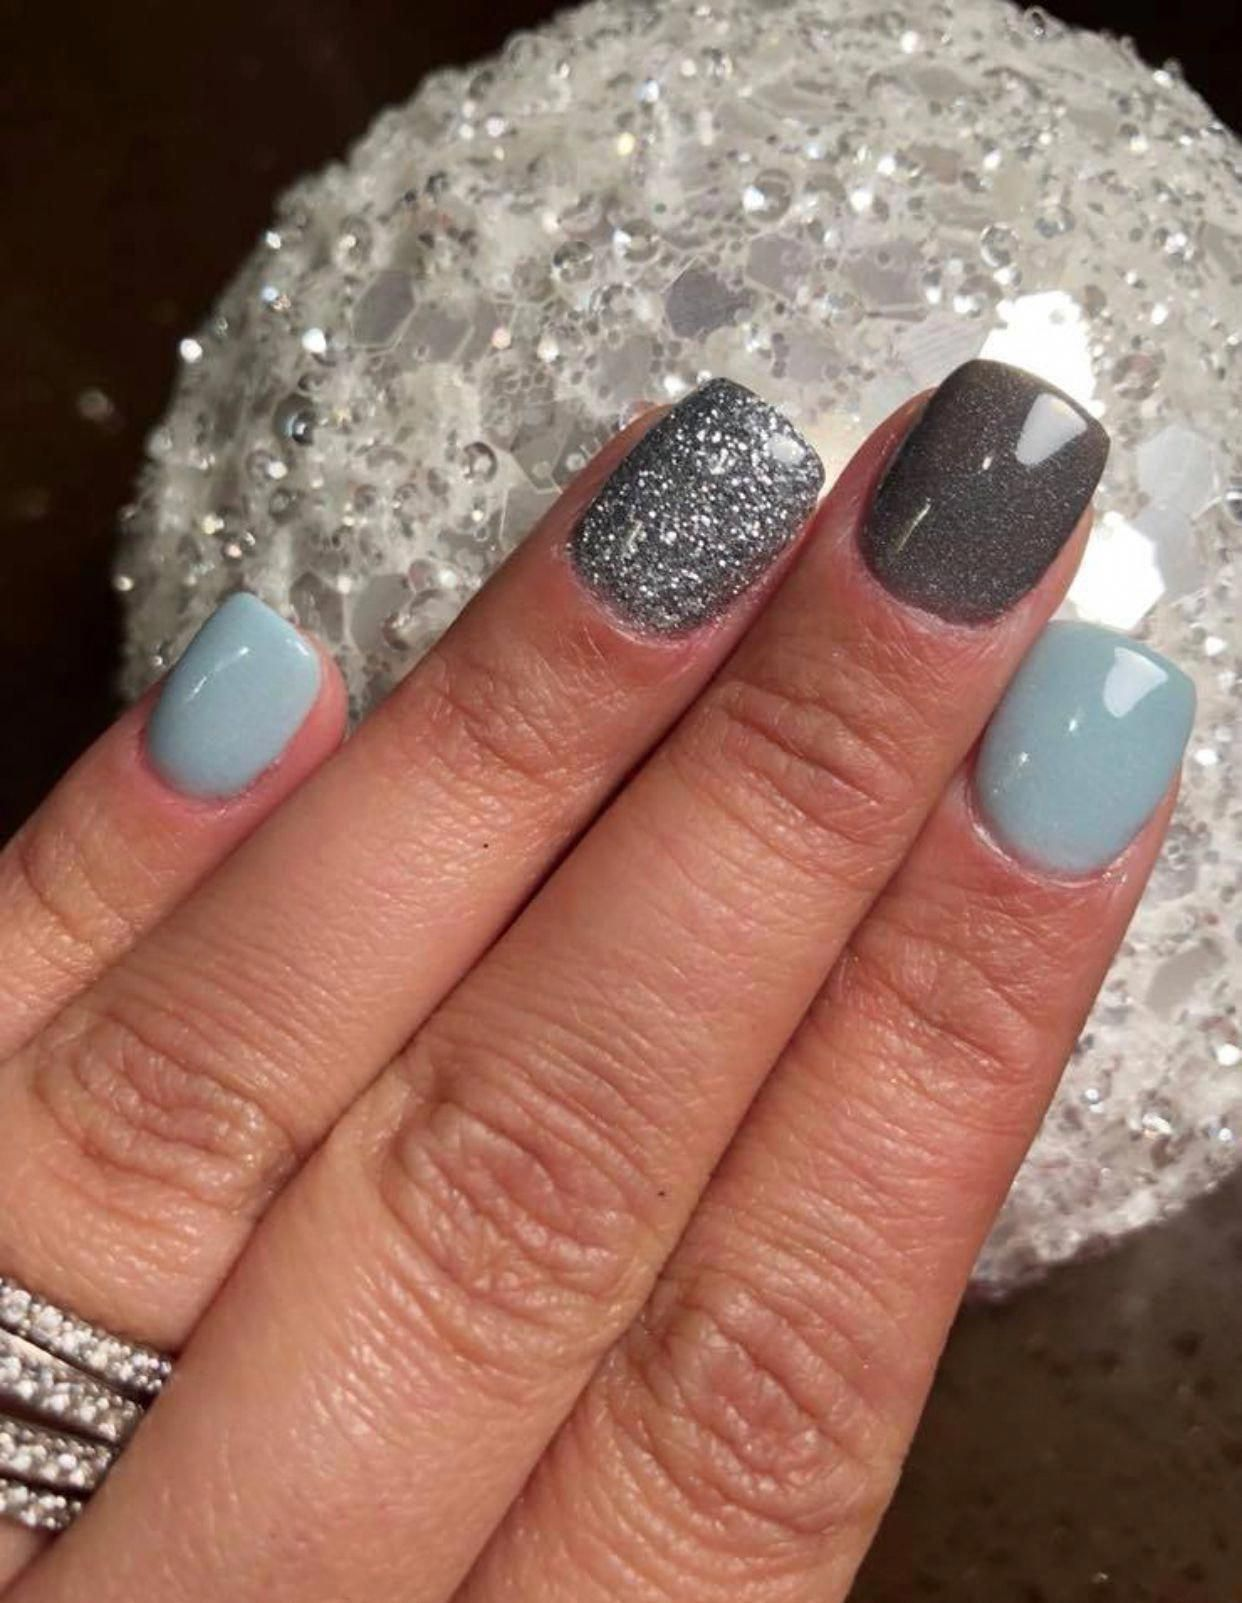 52 Newest Acrylic Nail Designs Ideas To Try This Year Outfit Women Style Wome 52 Newest Acrylic Nail Designs Ide In 2020 Powder Nails Dip Powder Nails Dipped Nails